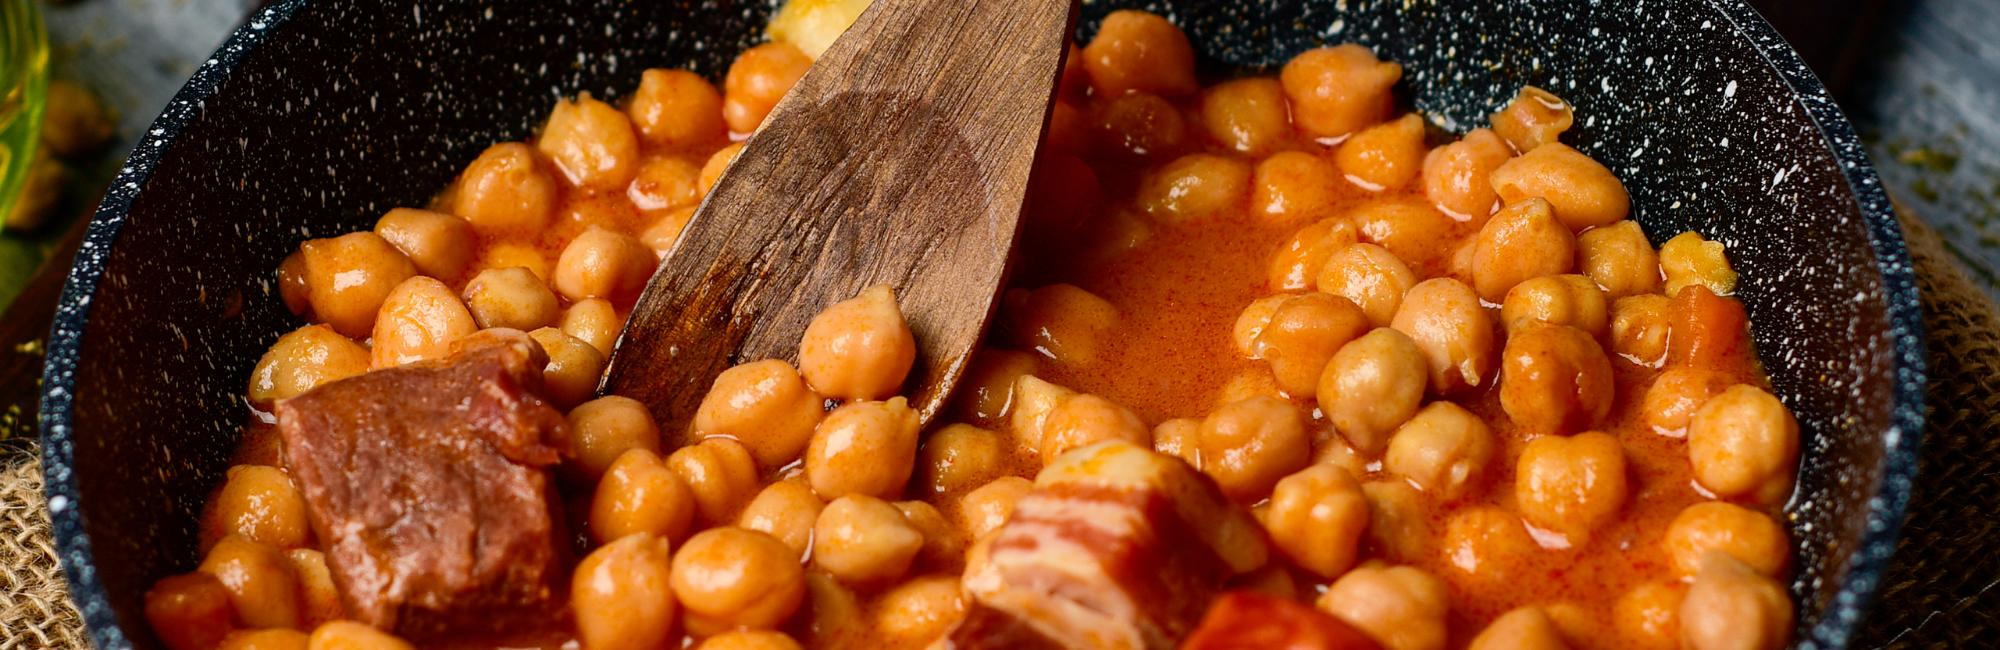 typical spanish stew 'Cocido'